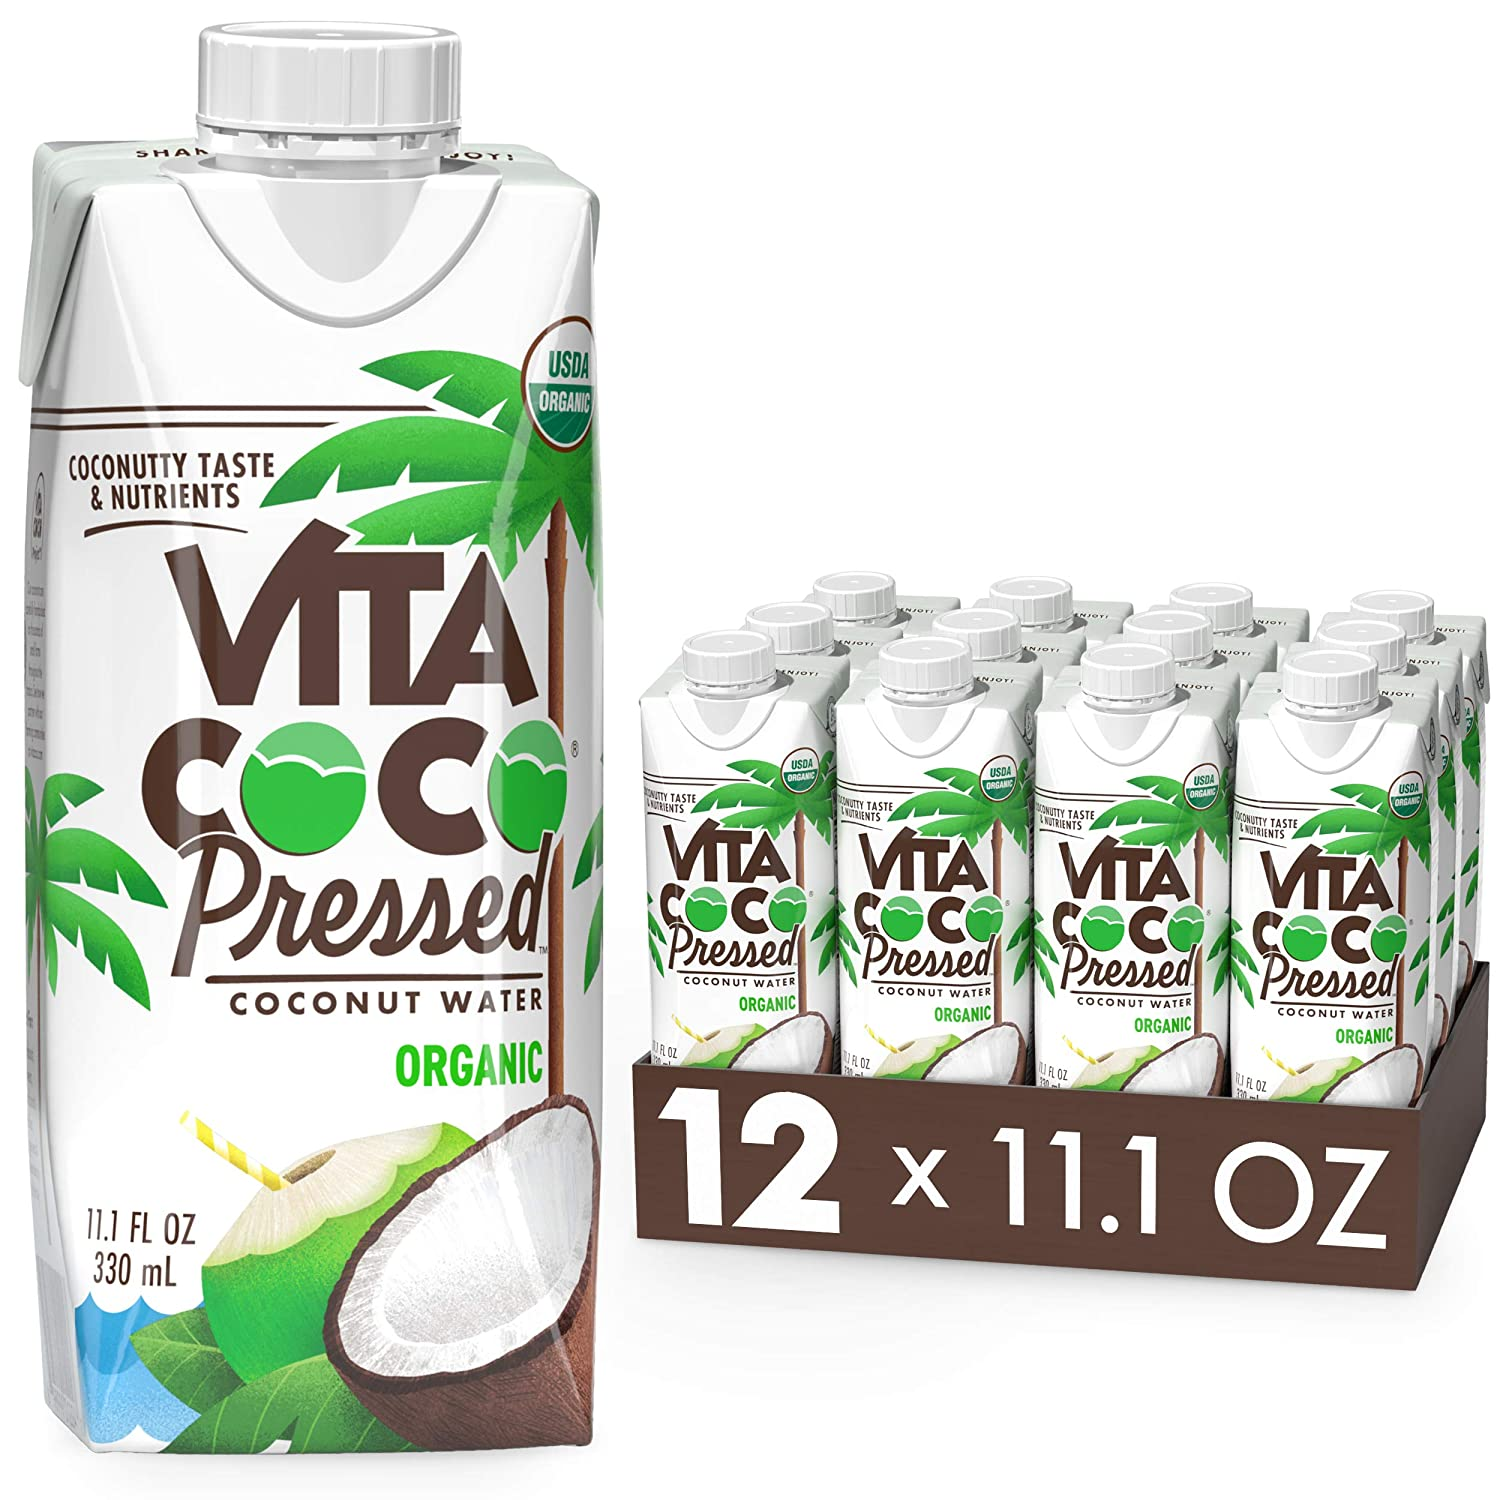 """Vita Coco Coconut Water, Pressed Organic Coconut   More """"Coconutty"""" Flavor   Natural Electrolytes   Vital Nutrients   11.1 Fl Oz (Pack of 12)"""